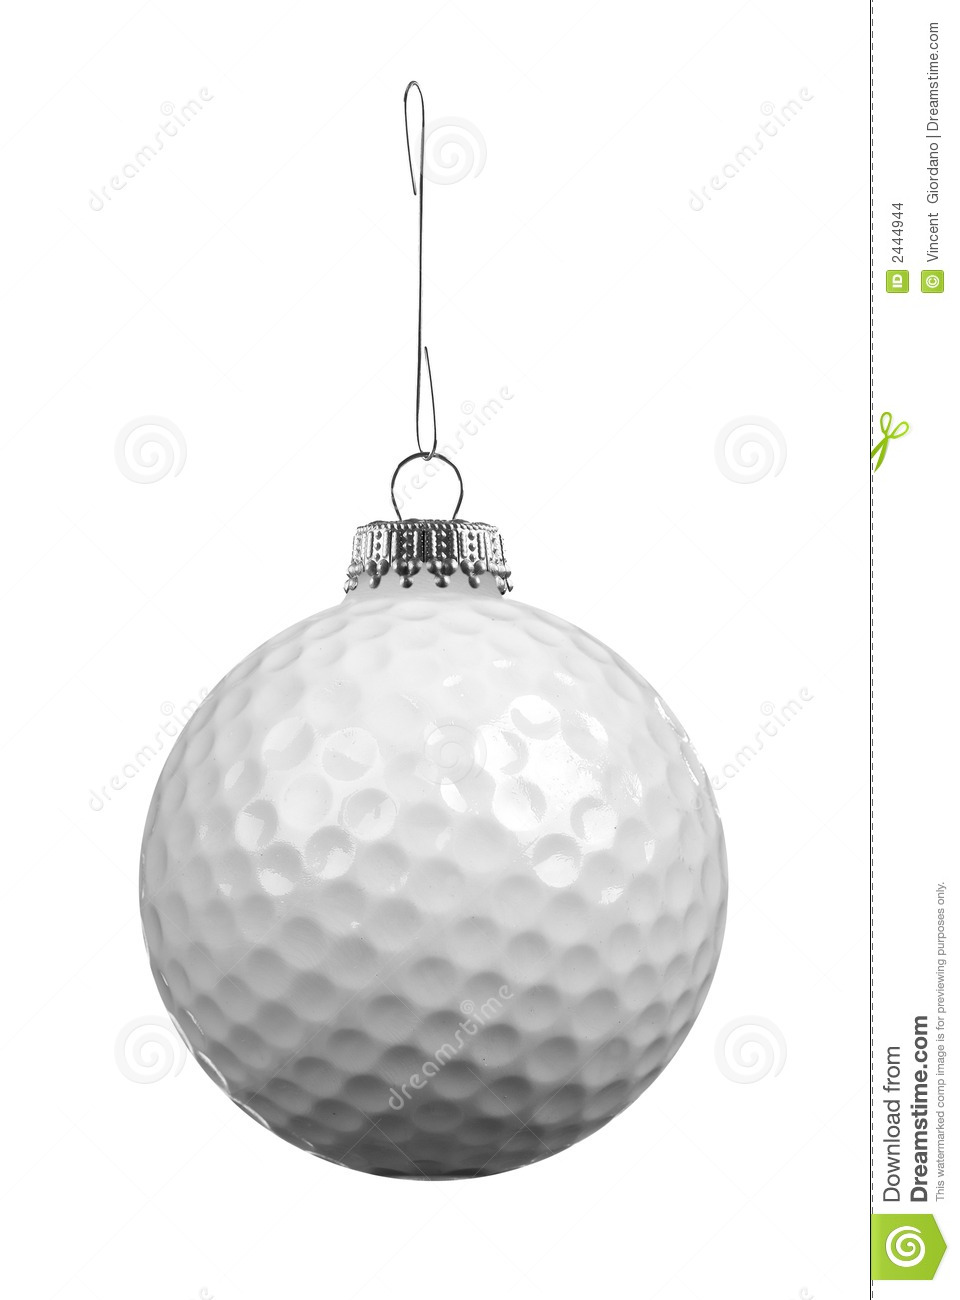 Golf Christmas Ornaments